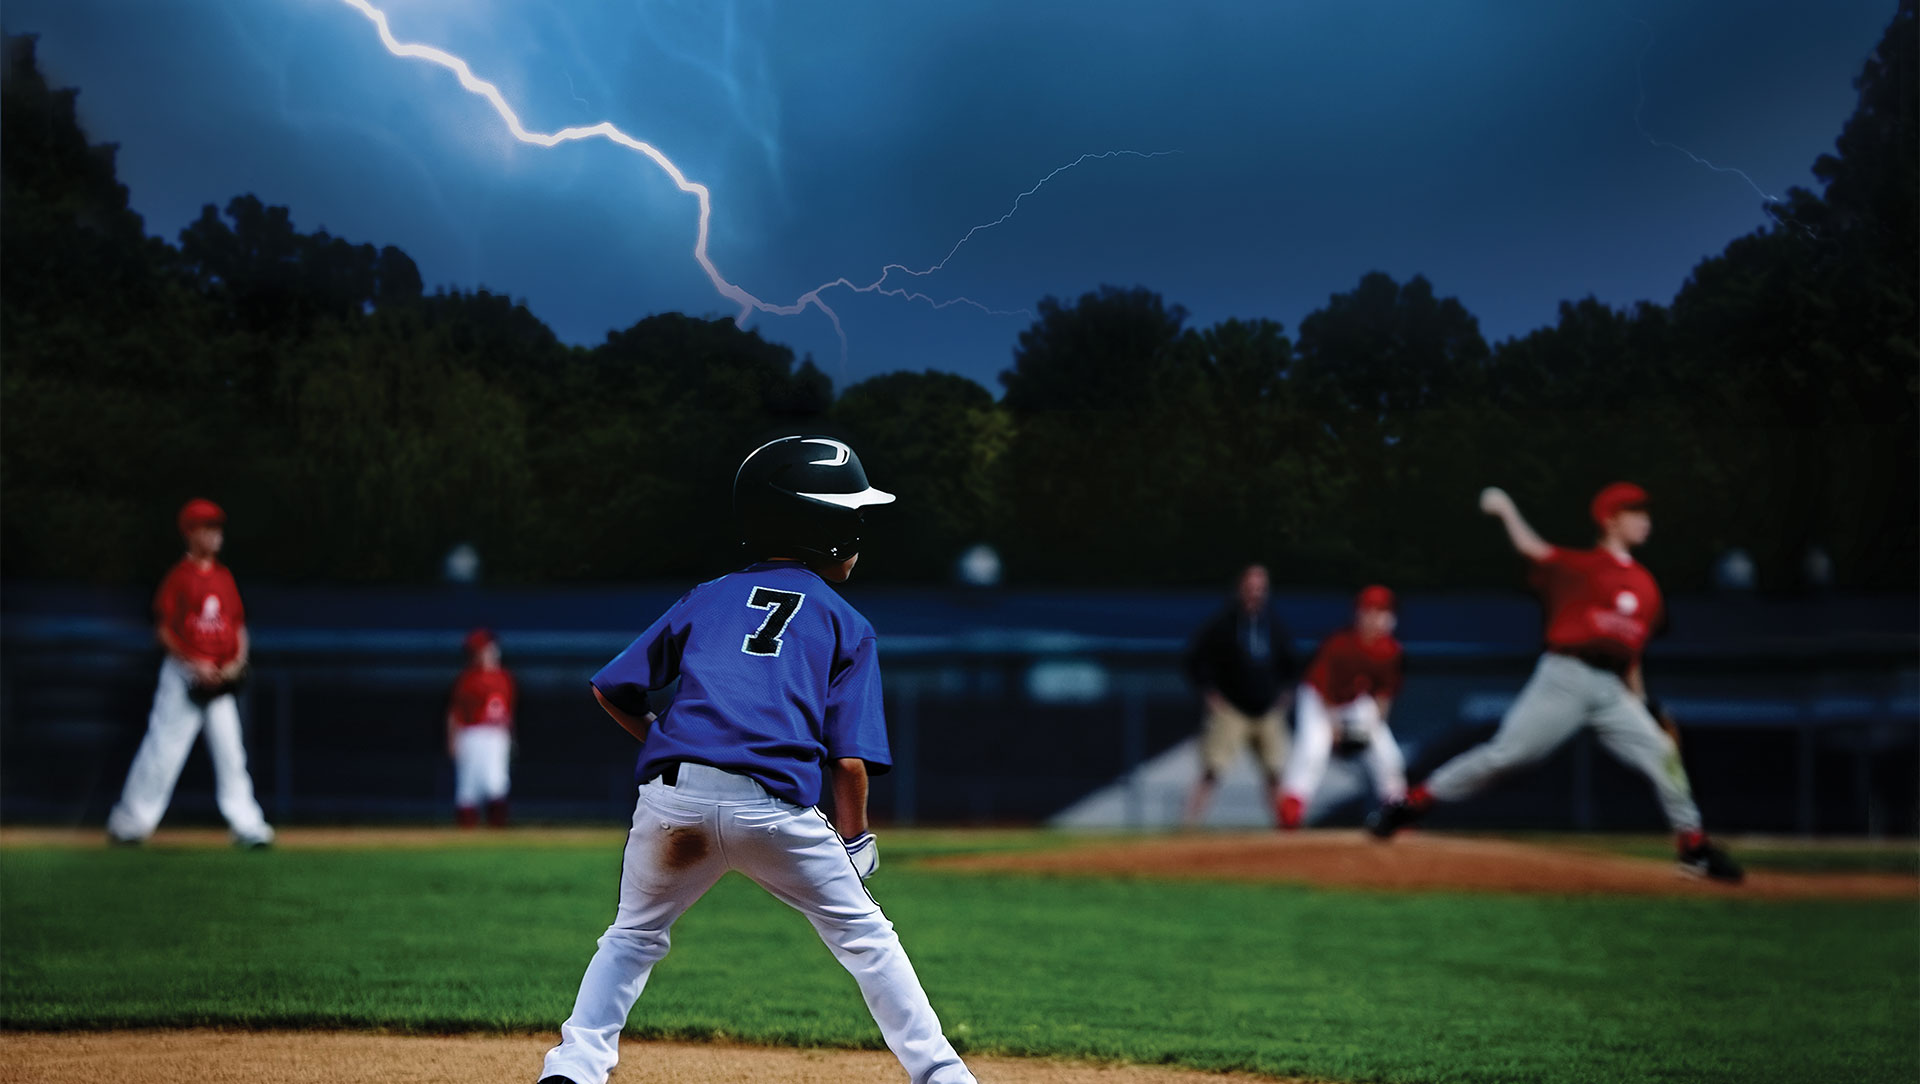 Children's baseball game with lightning in the sky